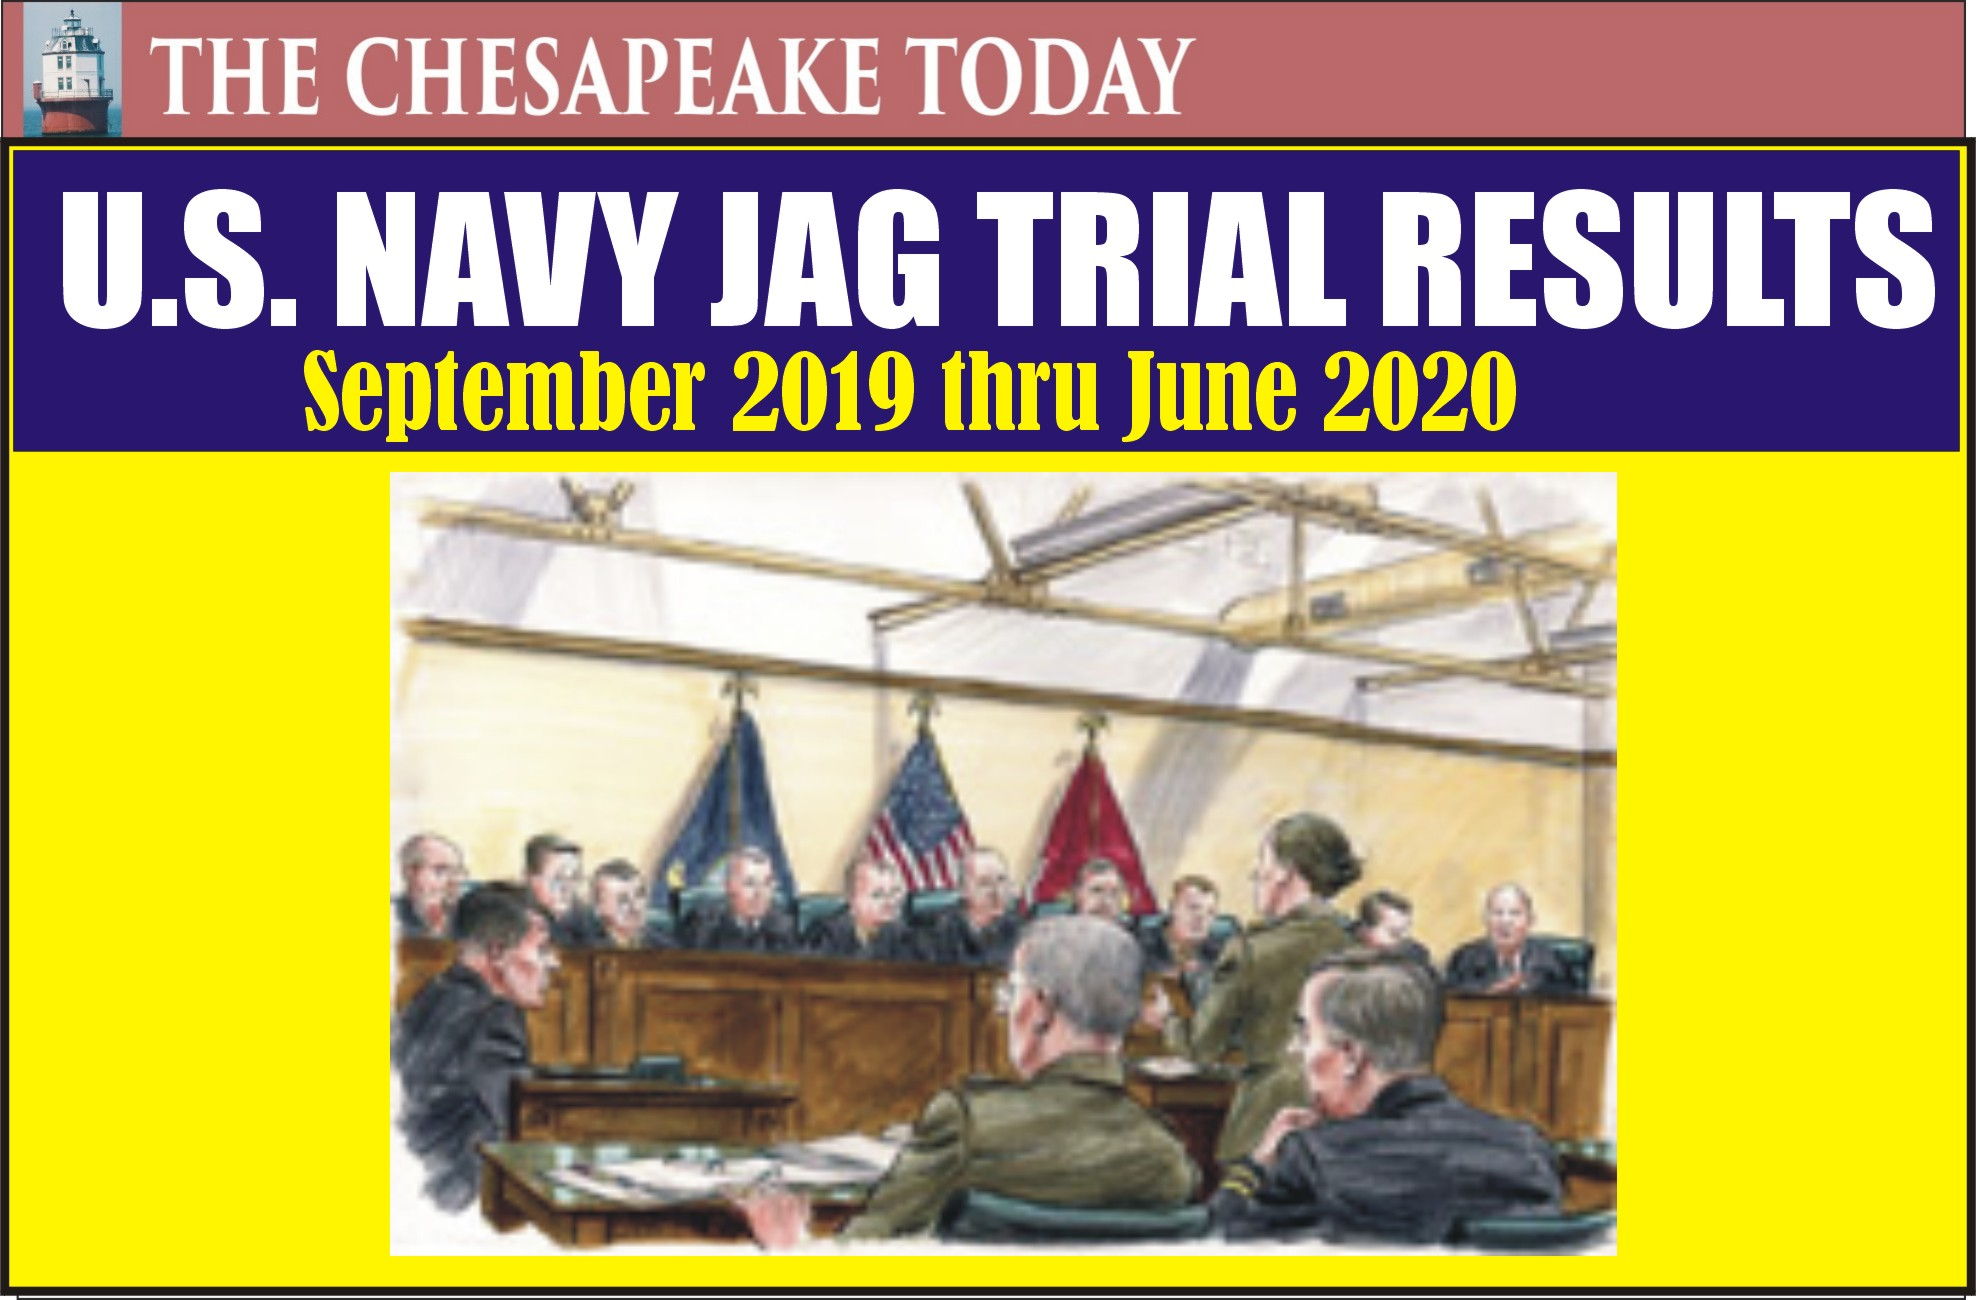 COURT NEWS: The following reports the results of Special and General Court-Martial convened within the United States Navy from Sept. 2019 to June 2020